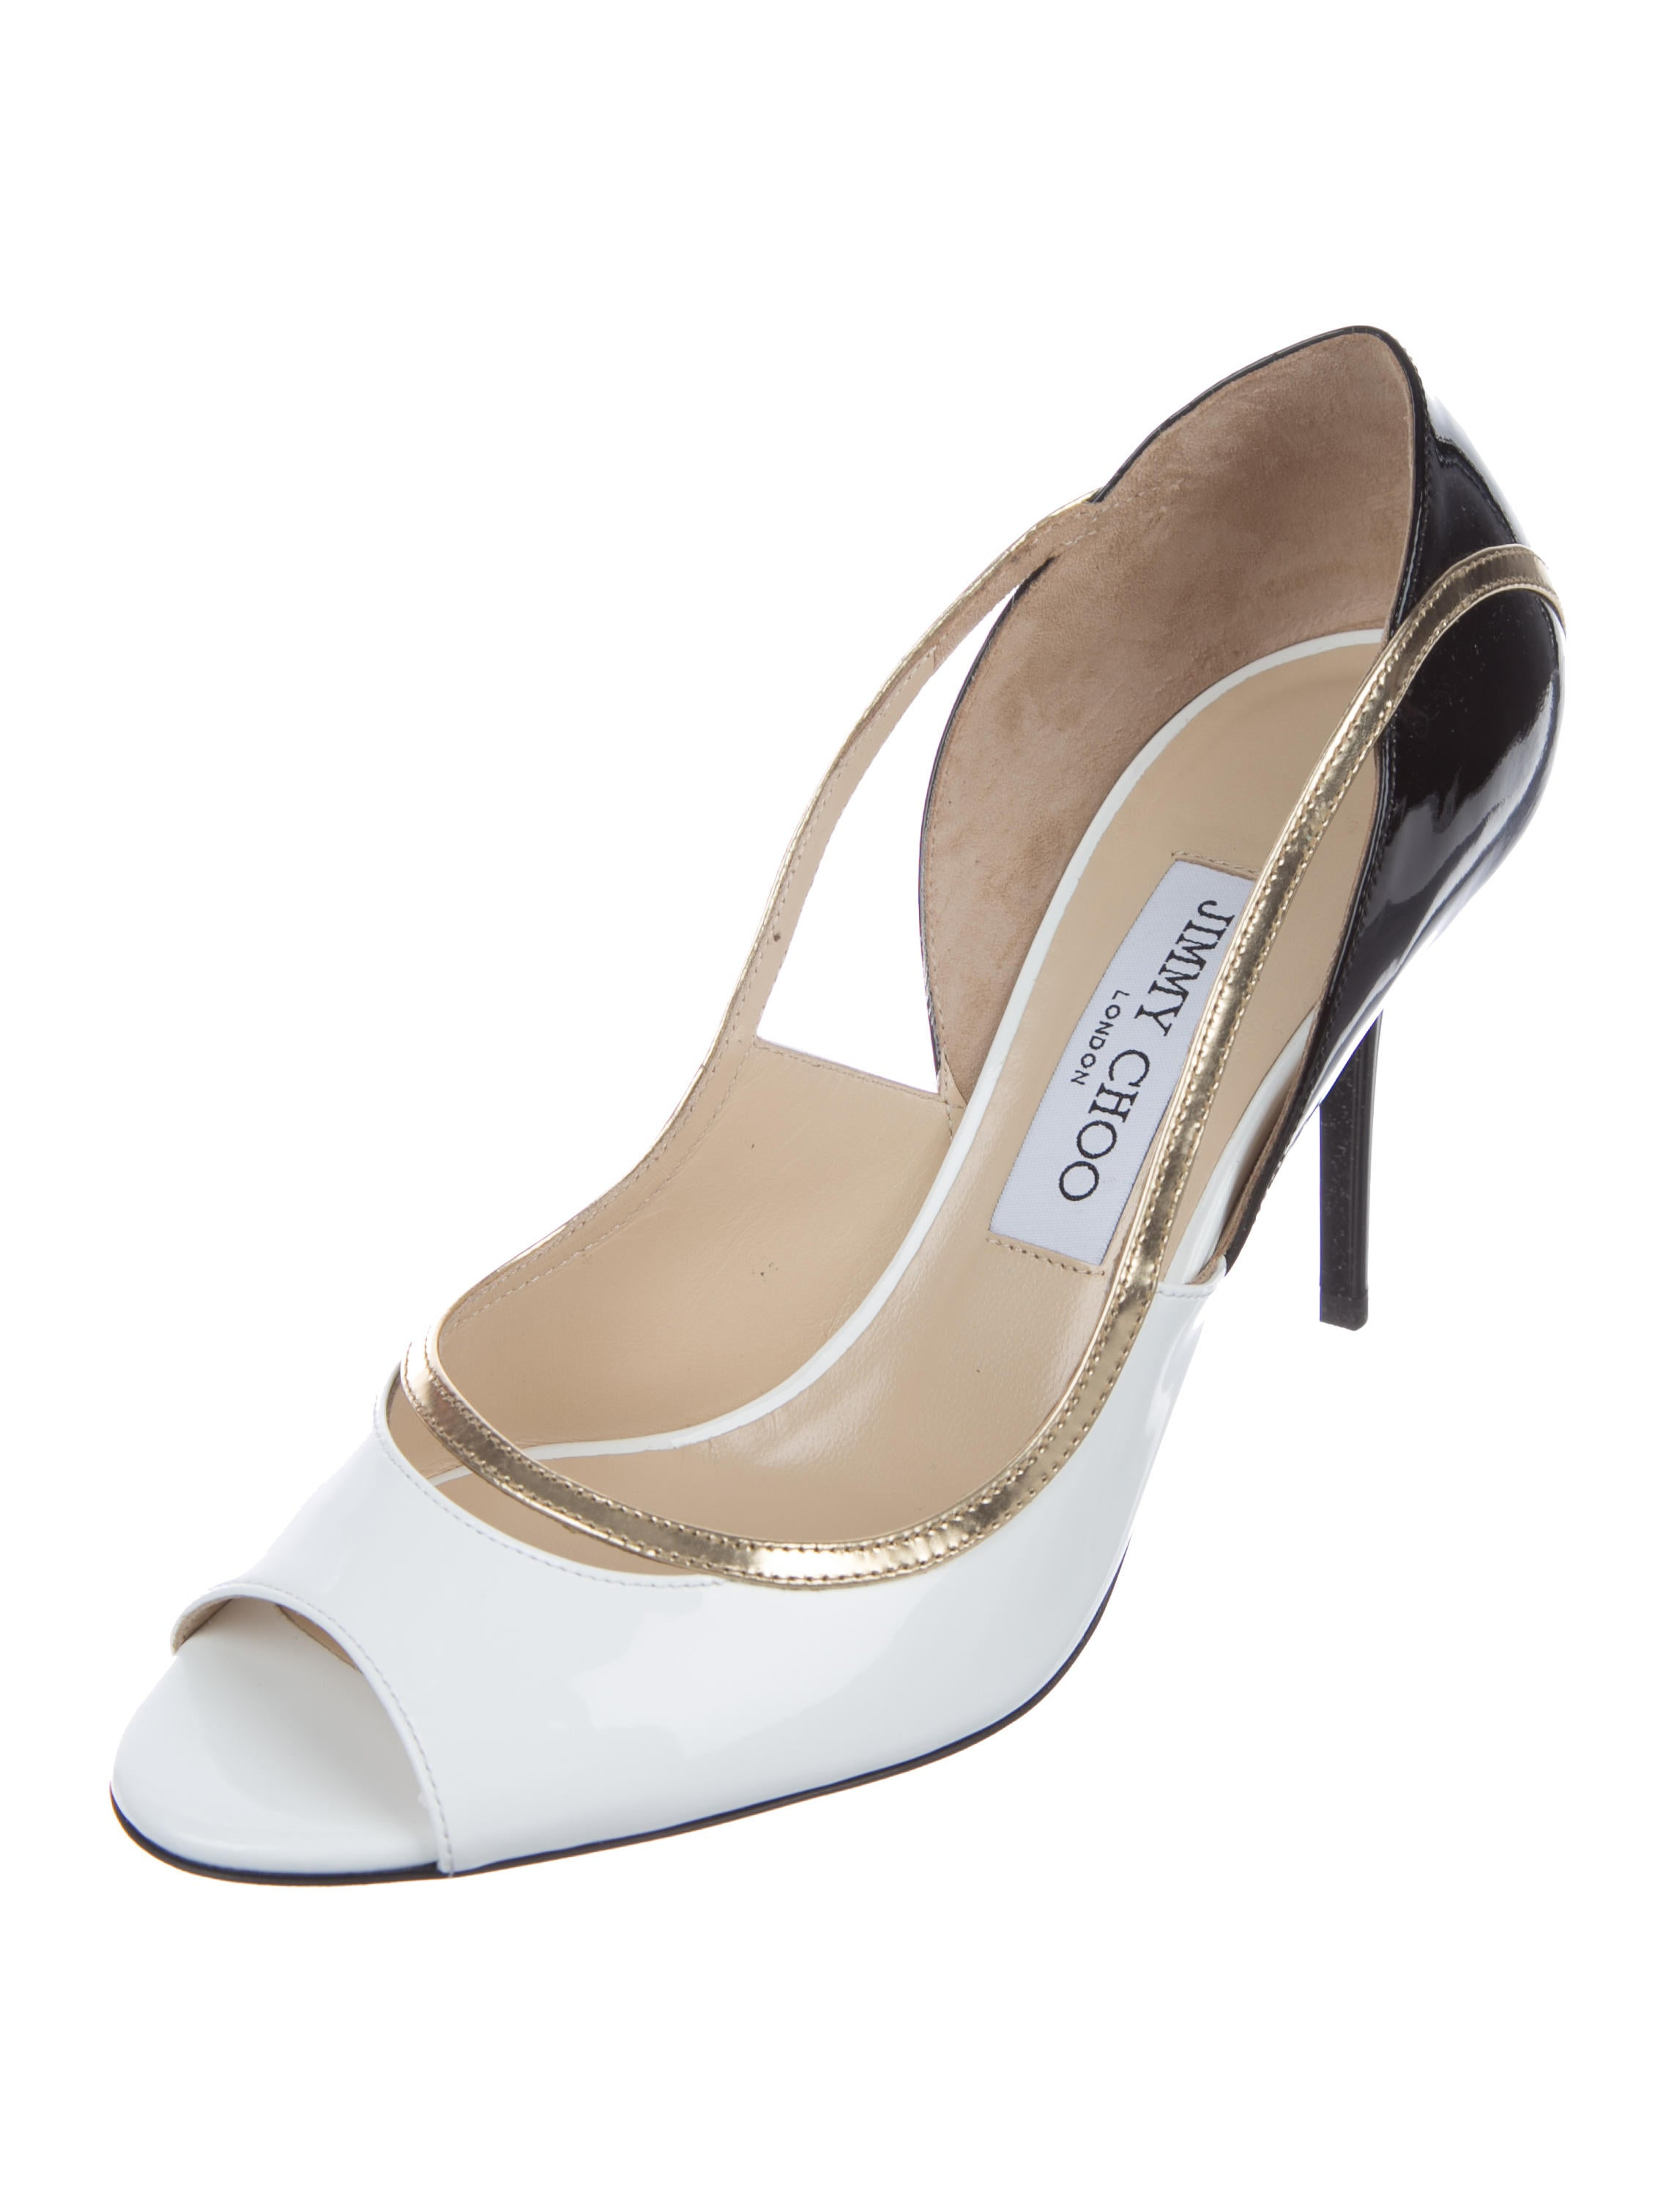 Jimmy Choo View Patent Leather Pumps w/ Tags sale extremely jl6aLFV7m